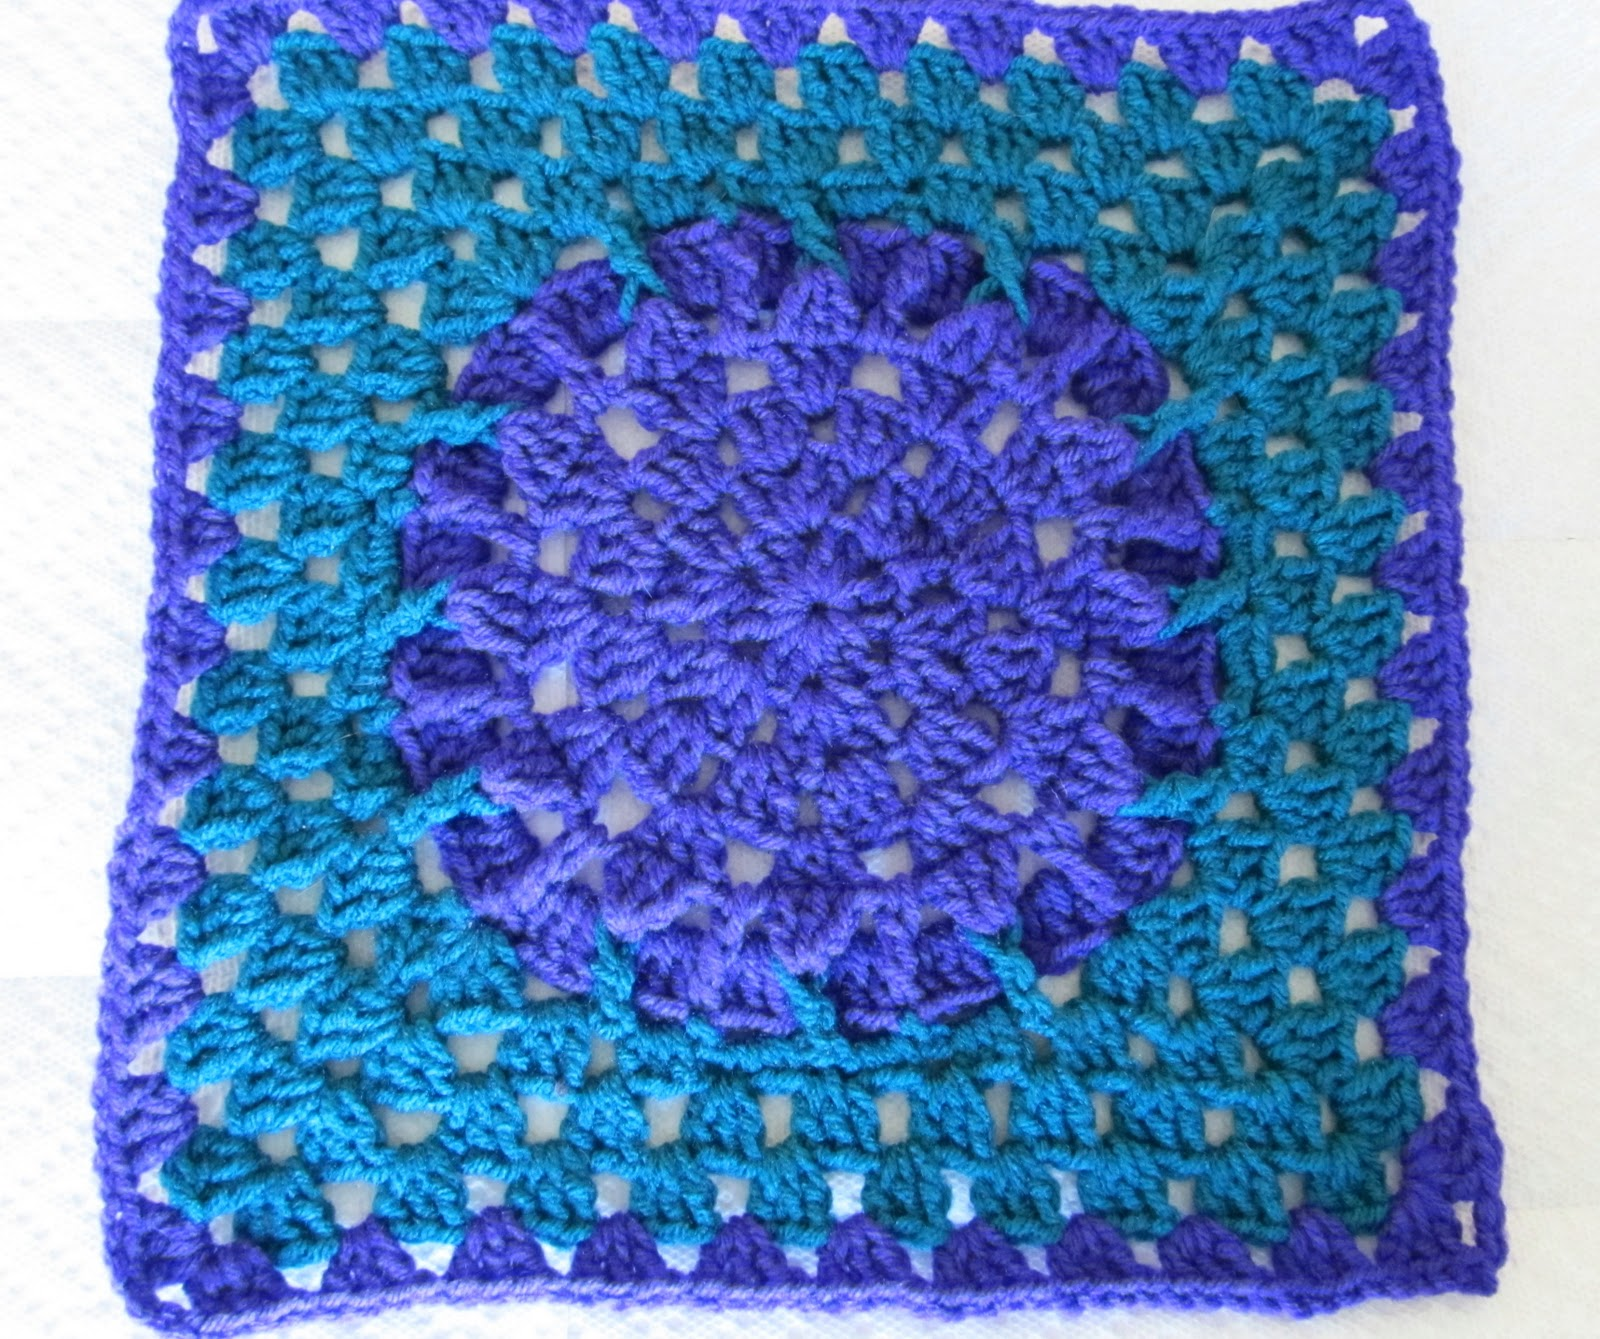 Crocheting Squares : ... Crochet and Knit: SmoothFoxs Friends Square 12x12 - Free crochet